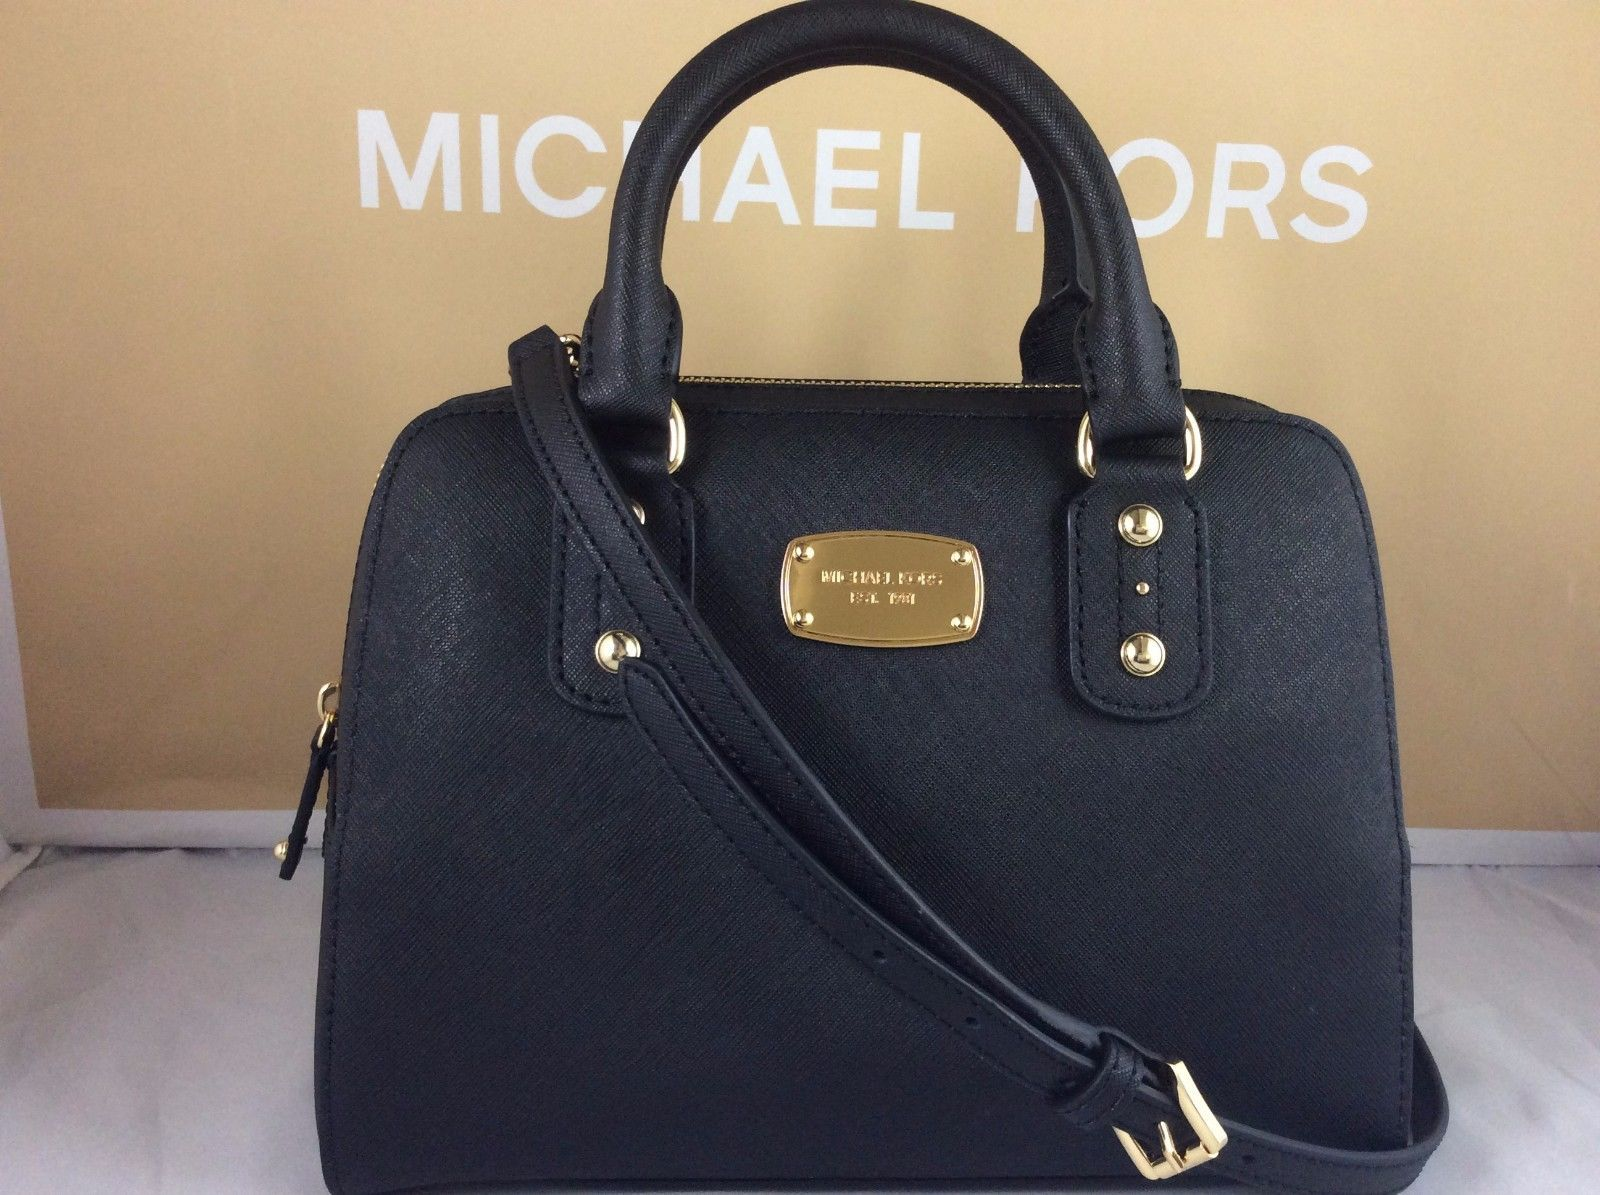 cee01393700c6 ... france nwt authentic michael kors black saffiano leather small satchel  bag purse tote 119.99 88f68 dc552 ...